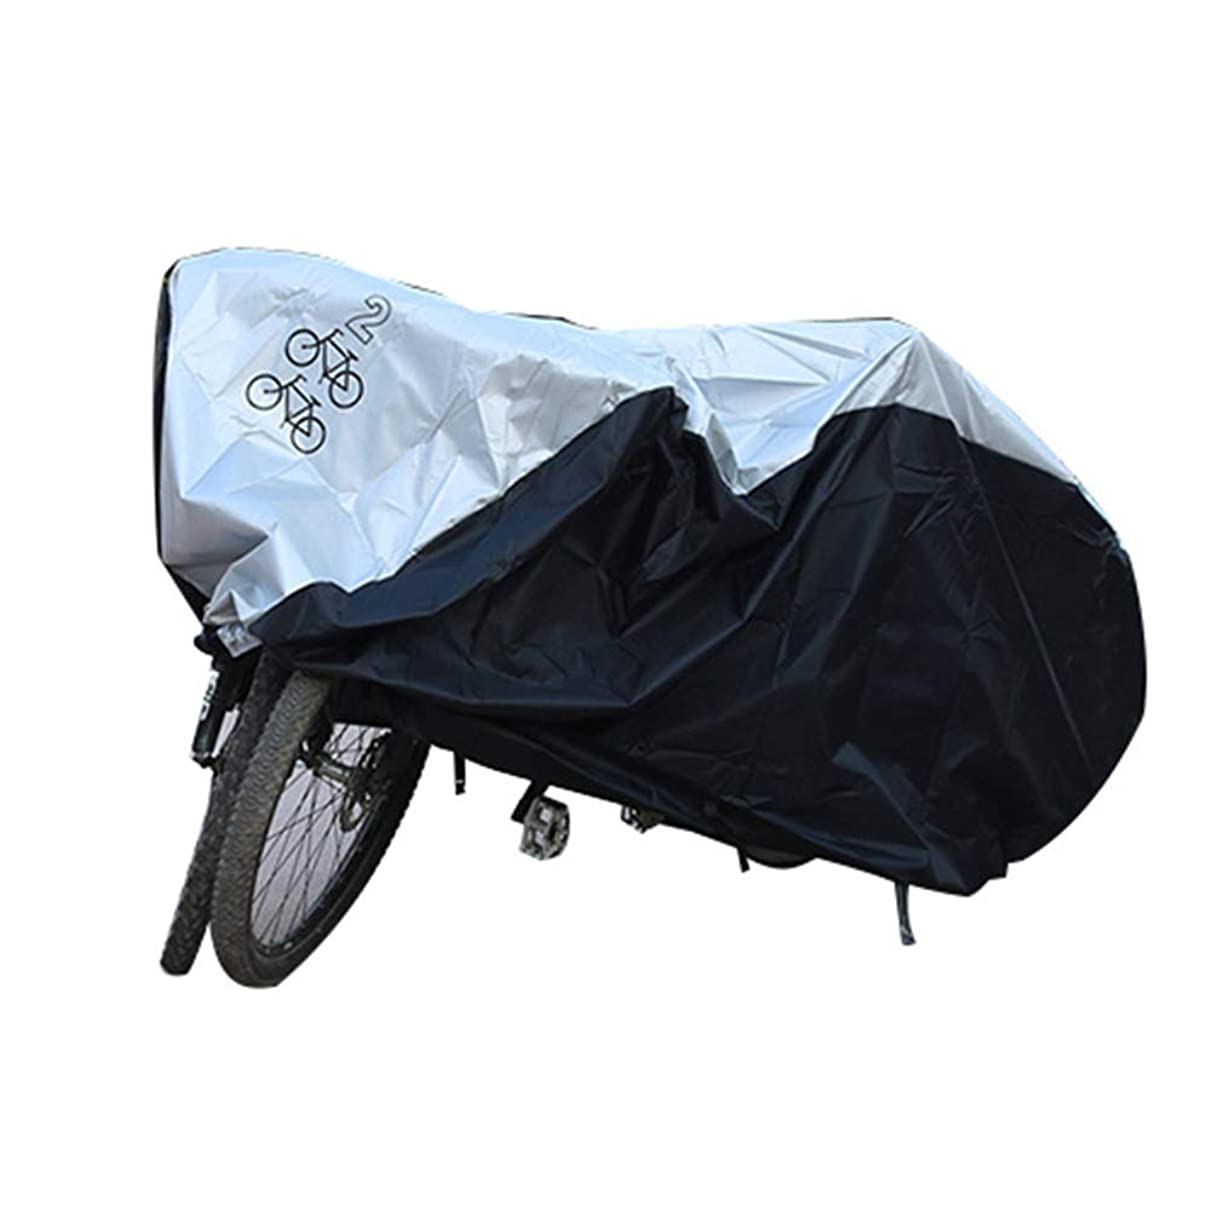 Waterproof Bike Cover Shade Net/Sunscreen Tarpaulin,Shade Sunscreen Anti-Oxidation Easy to Store, 3 Sizes, Silver + Black, WenMing Yue, 200X75X110CM